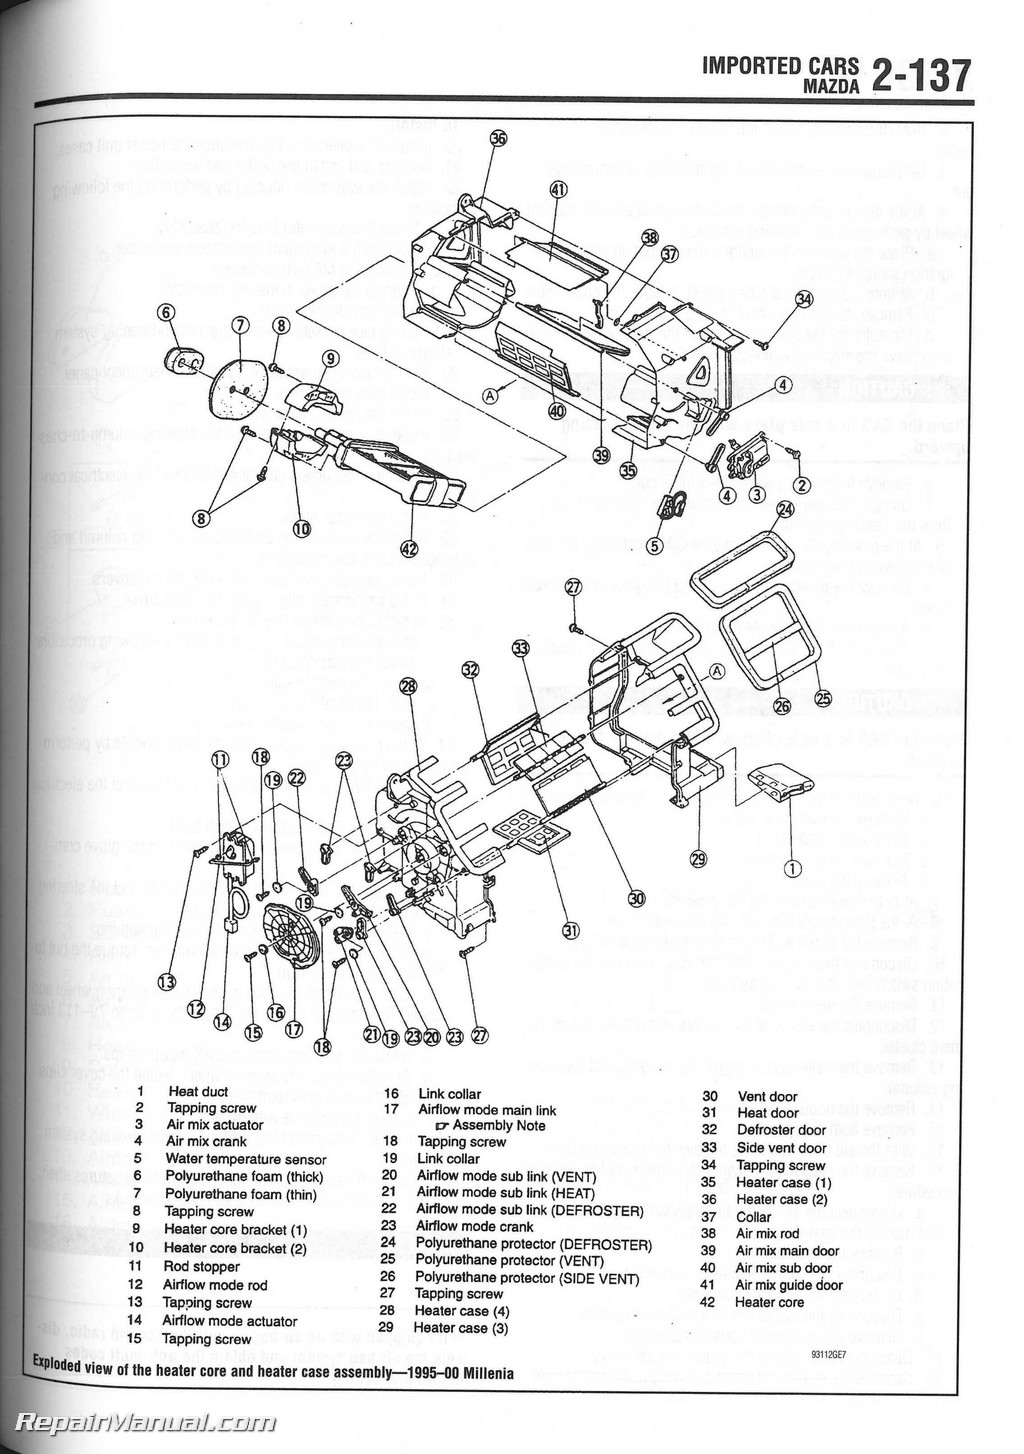 1995 Nissan Pick Up Wiring Diagram Chilton 1990 2000 Heater Core Installation Manual